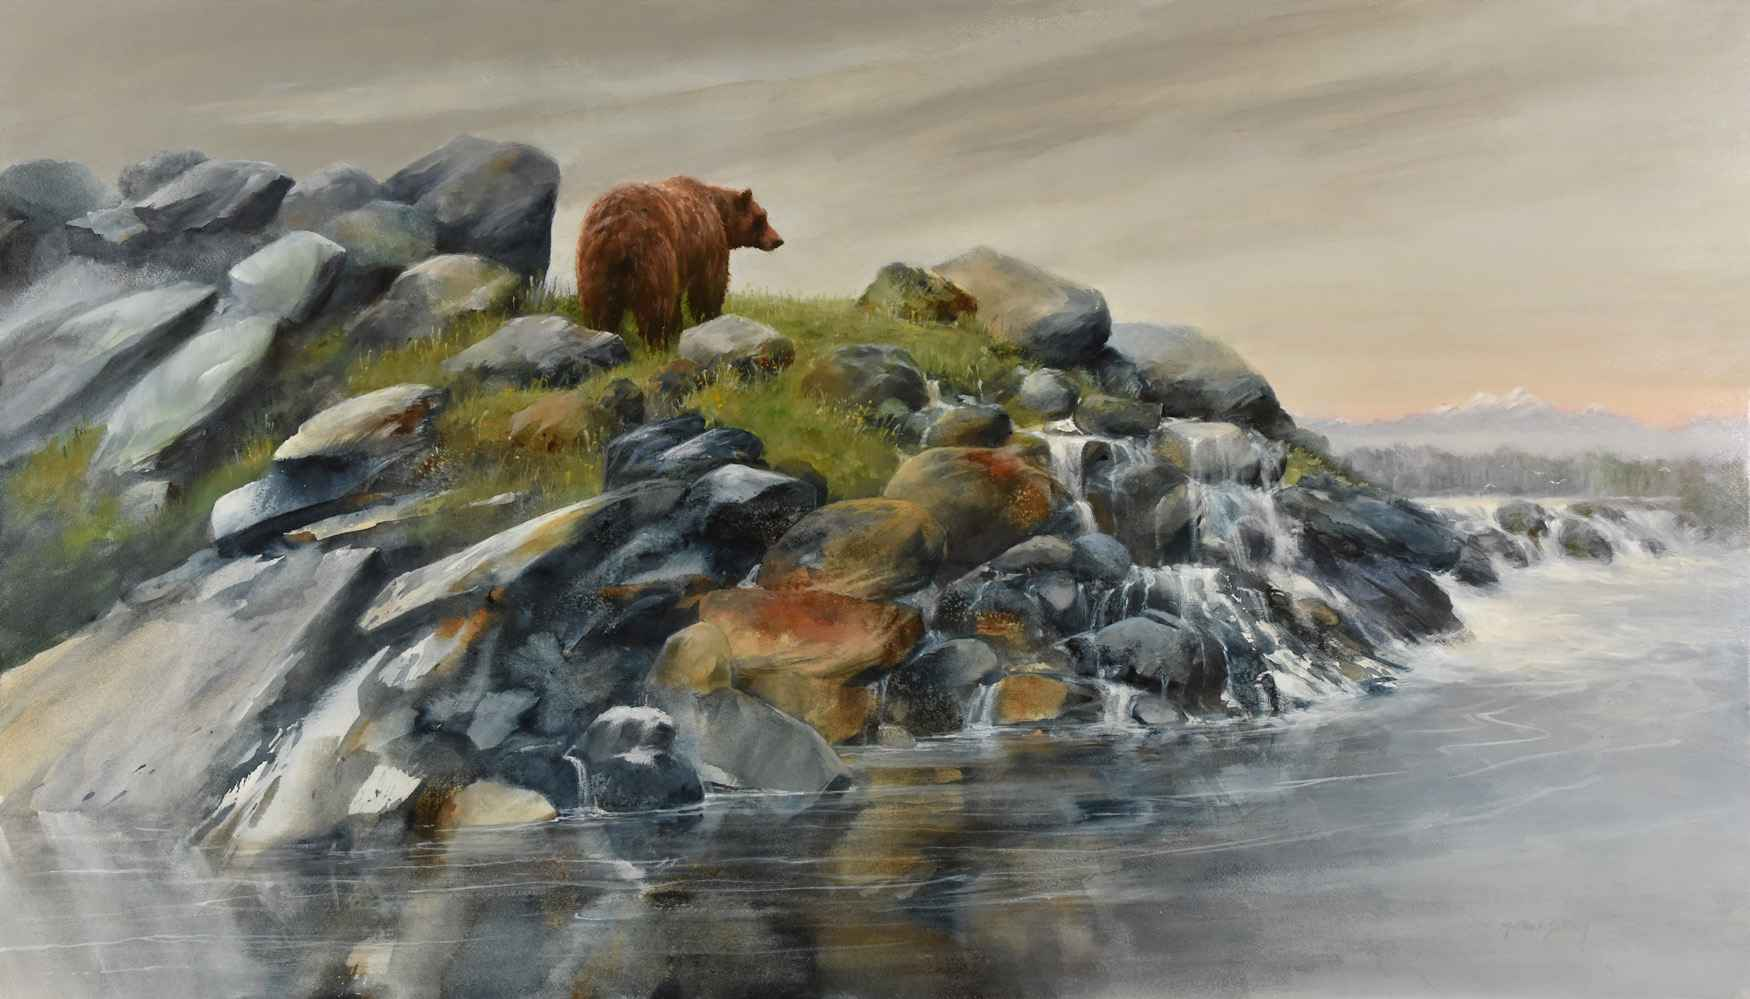 Waiting for the Salmon by  Morten E. Solberg - Masterpiece Online